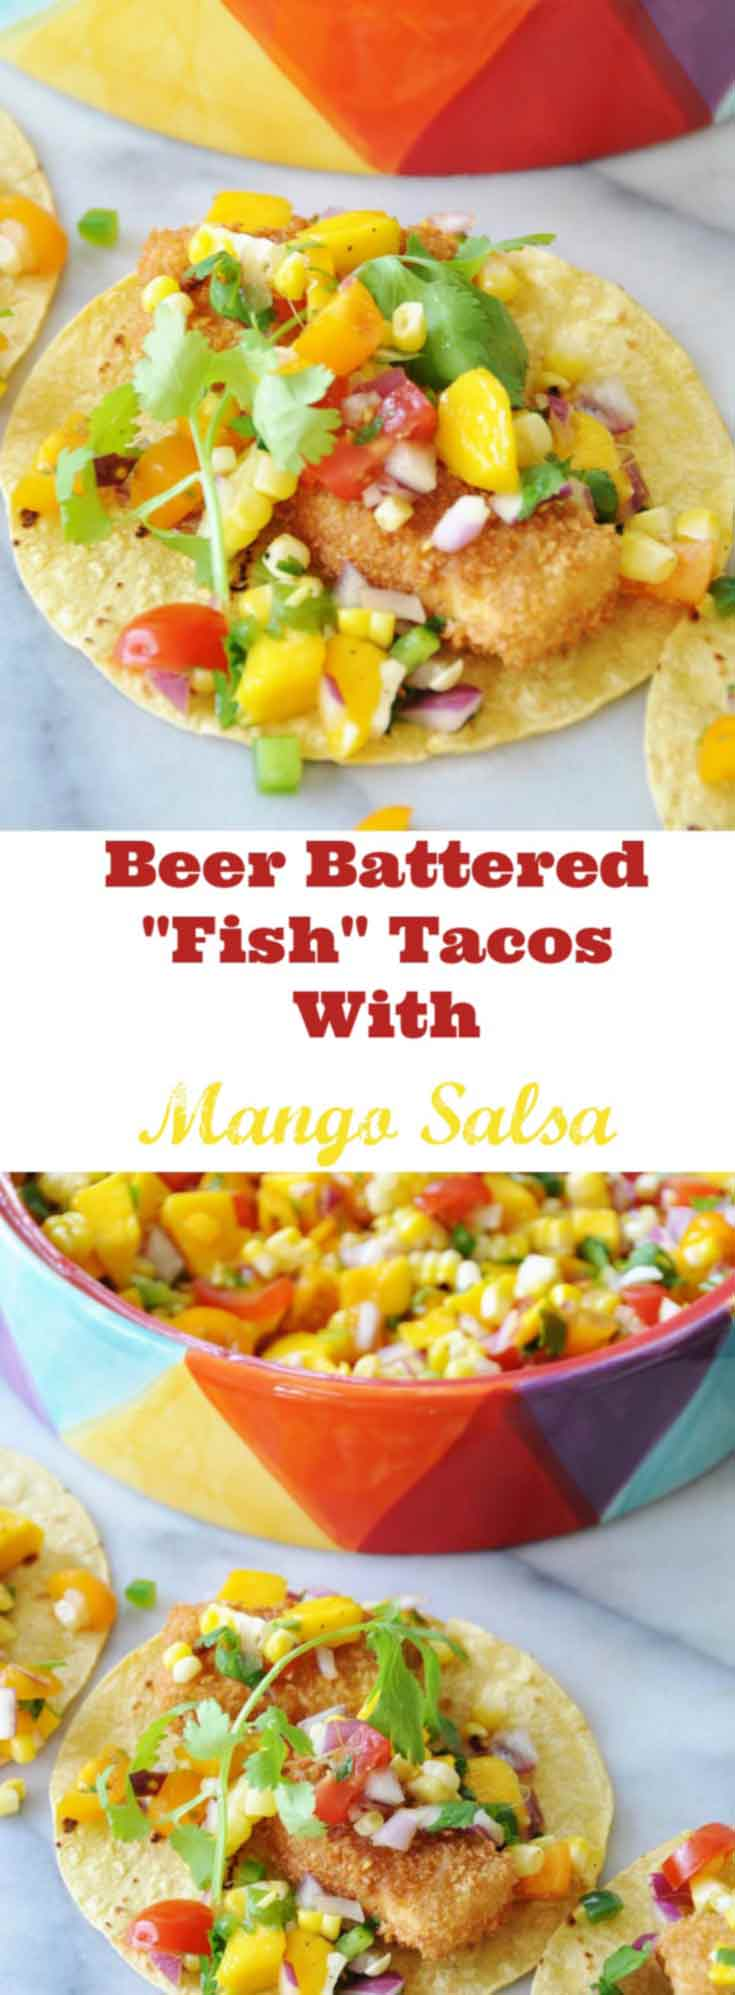 "Beer Battered ""Fish"" Tacos with Mango Salsa! This vegan taco recipe is made with tofu, but you'd never know it when you bite into the crunchy ""fish"" pieces. This is a favorite with my non-vegan friends! www.veganosity.com"